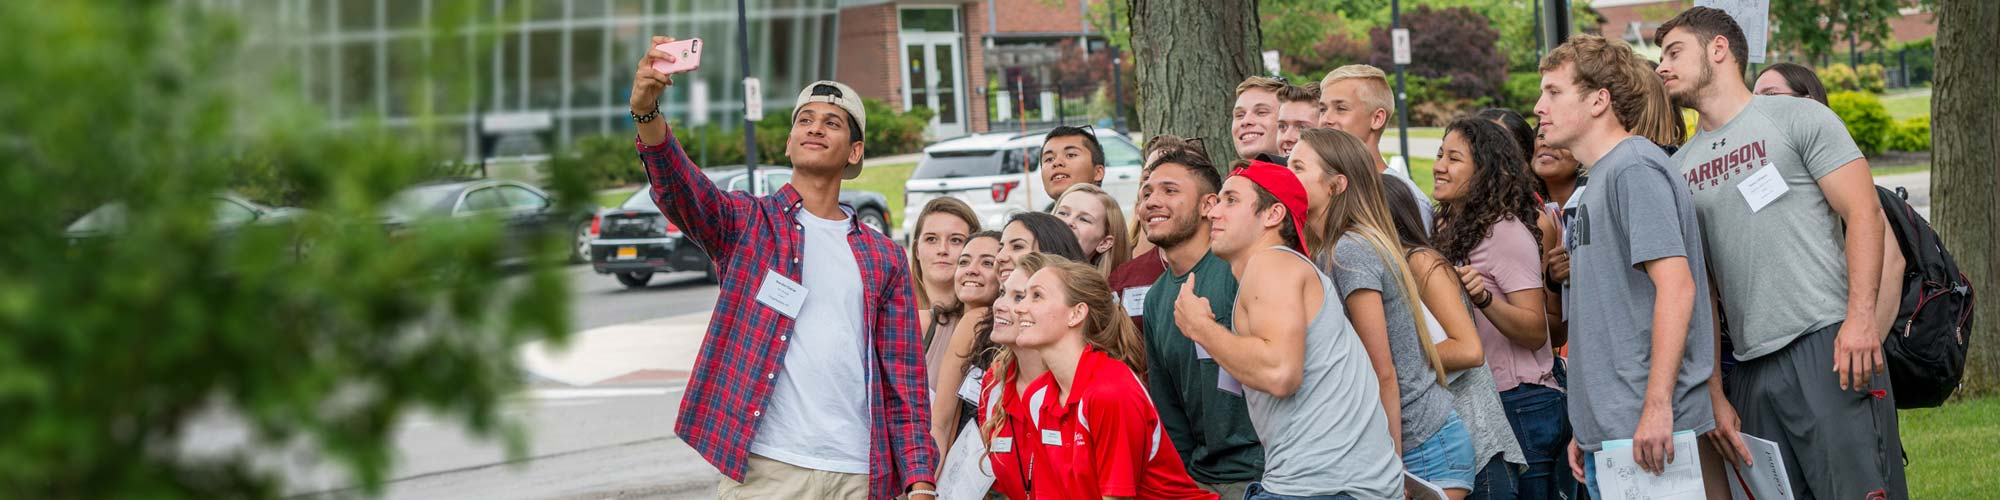 Orientation students pause for a group selfie